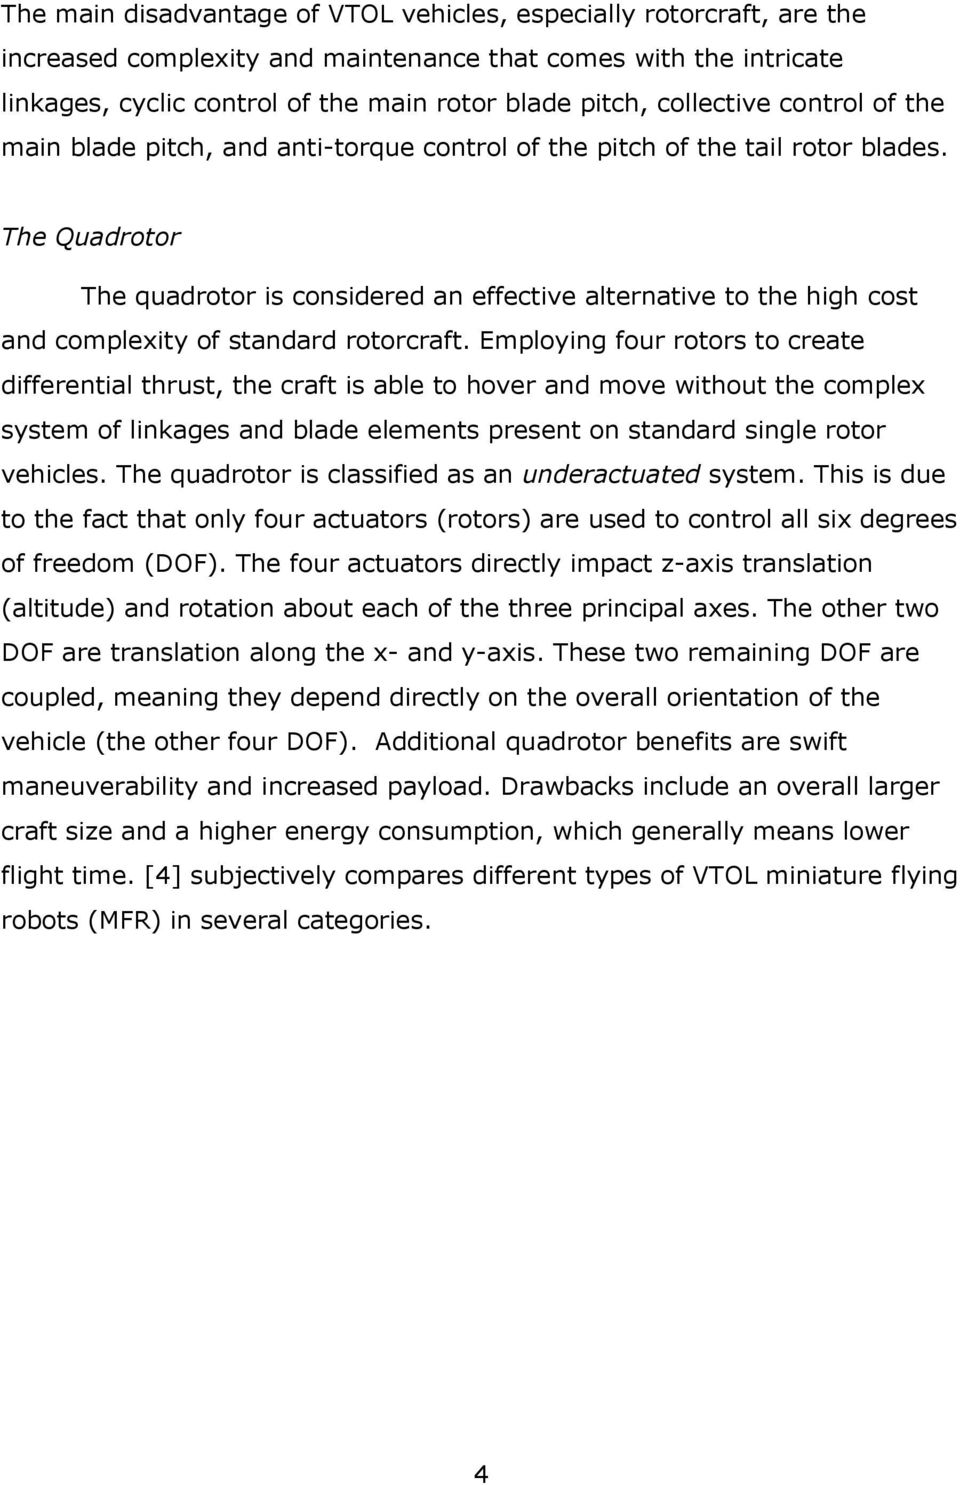 The Quadrotor The quadrotor is considered an effective alternative to the high cost and complexity of standard rotorcraft.